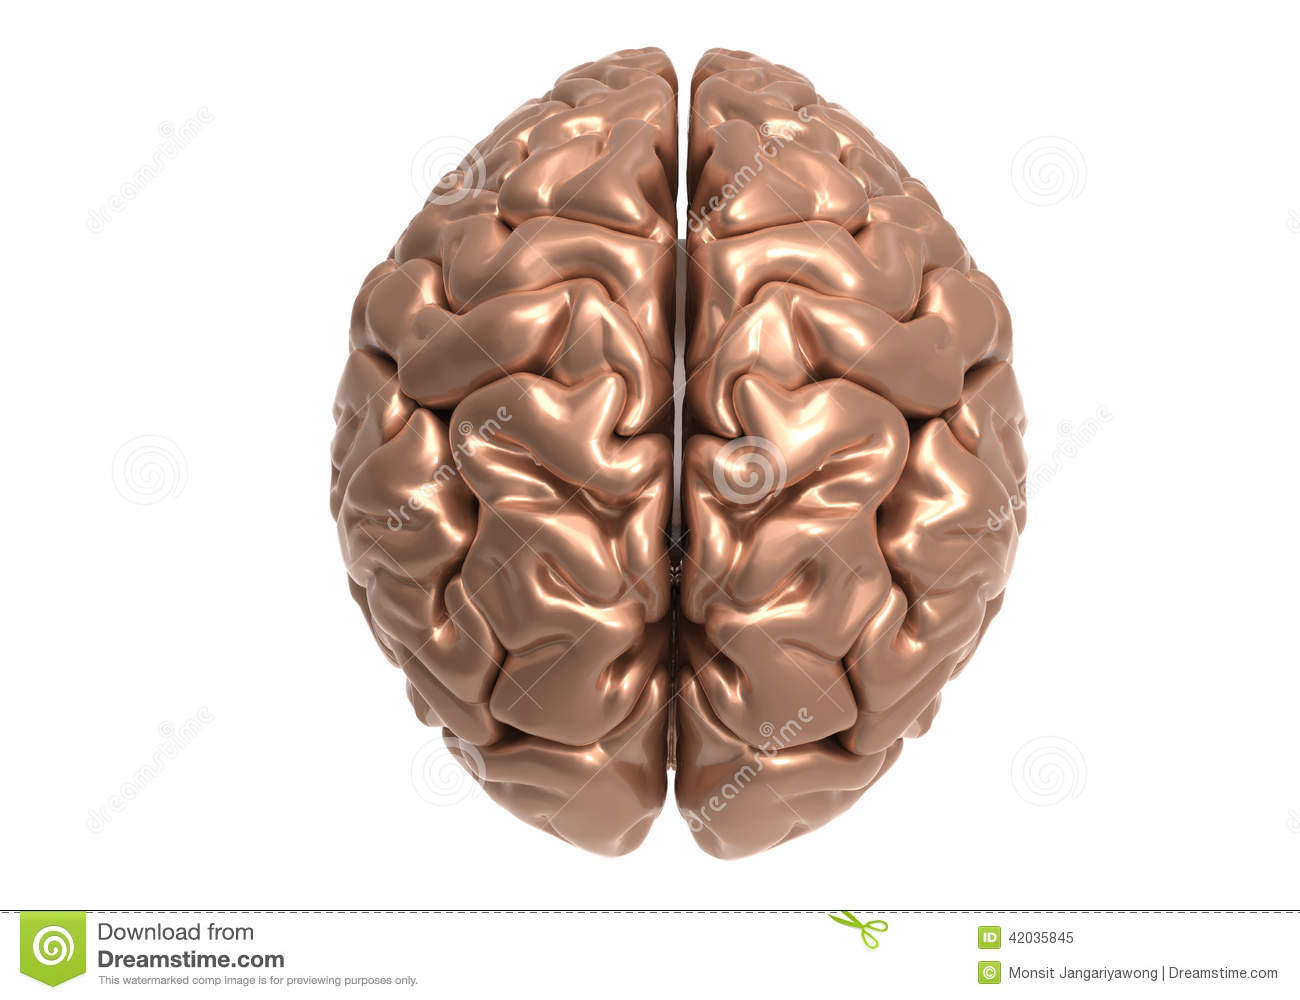 Brain with clipping mask stock illustration. Illustration of anatomy ...